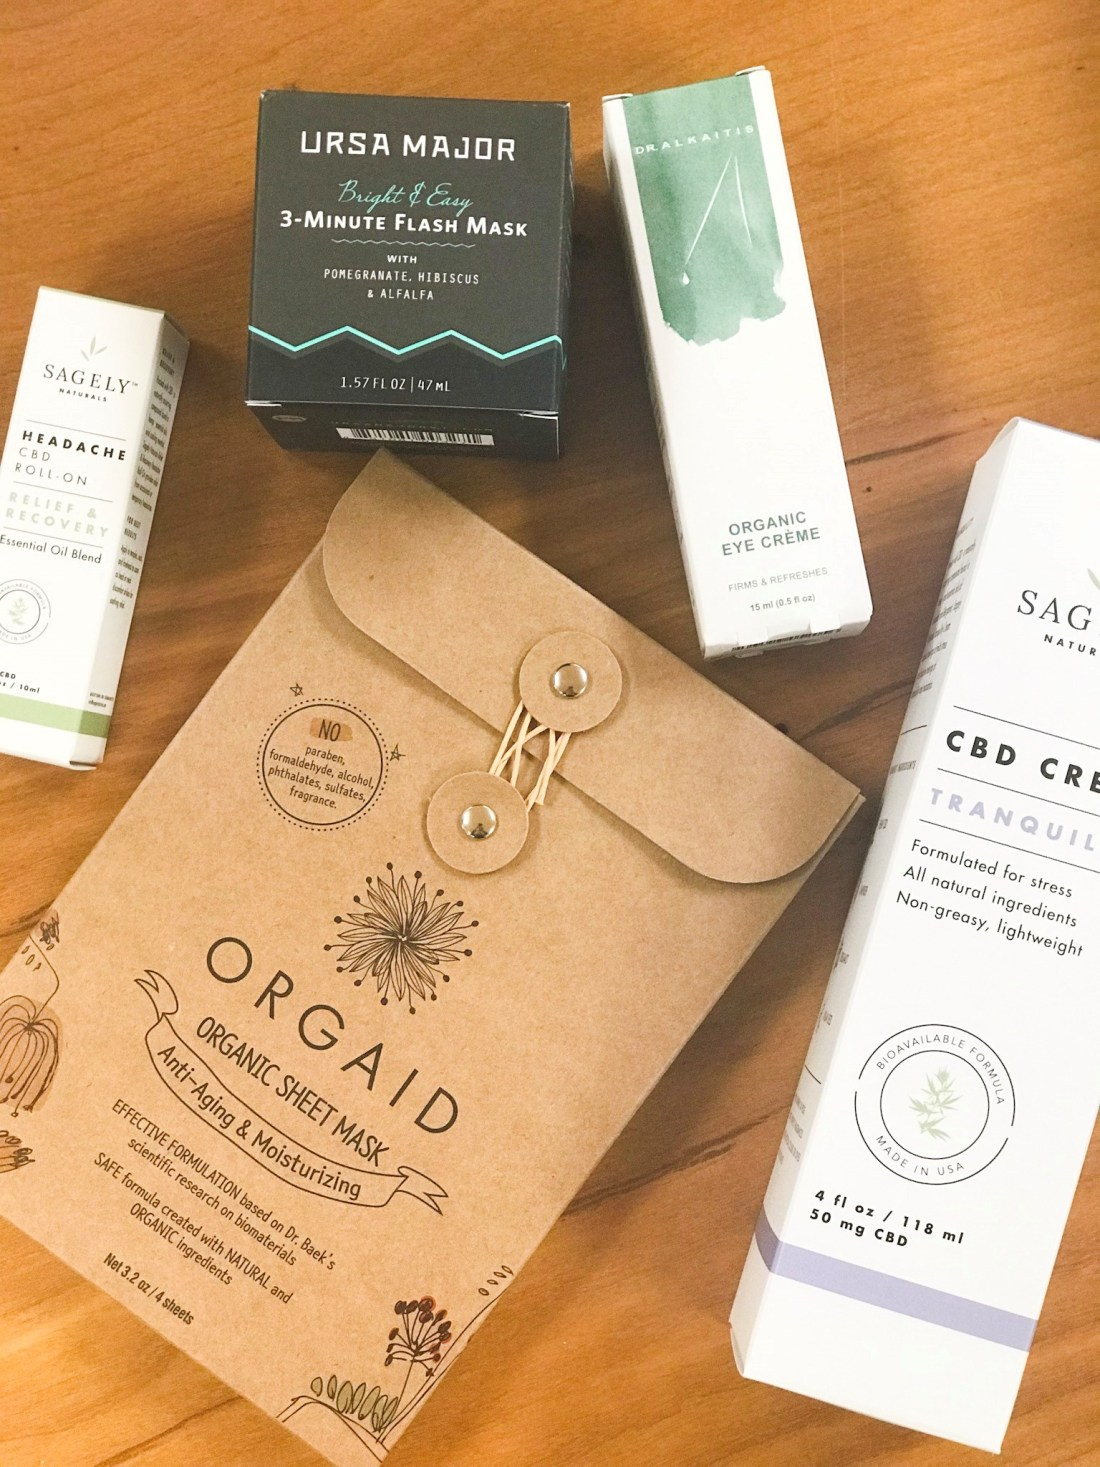 Organic, All-Natural Products